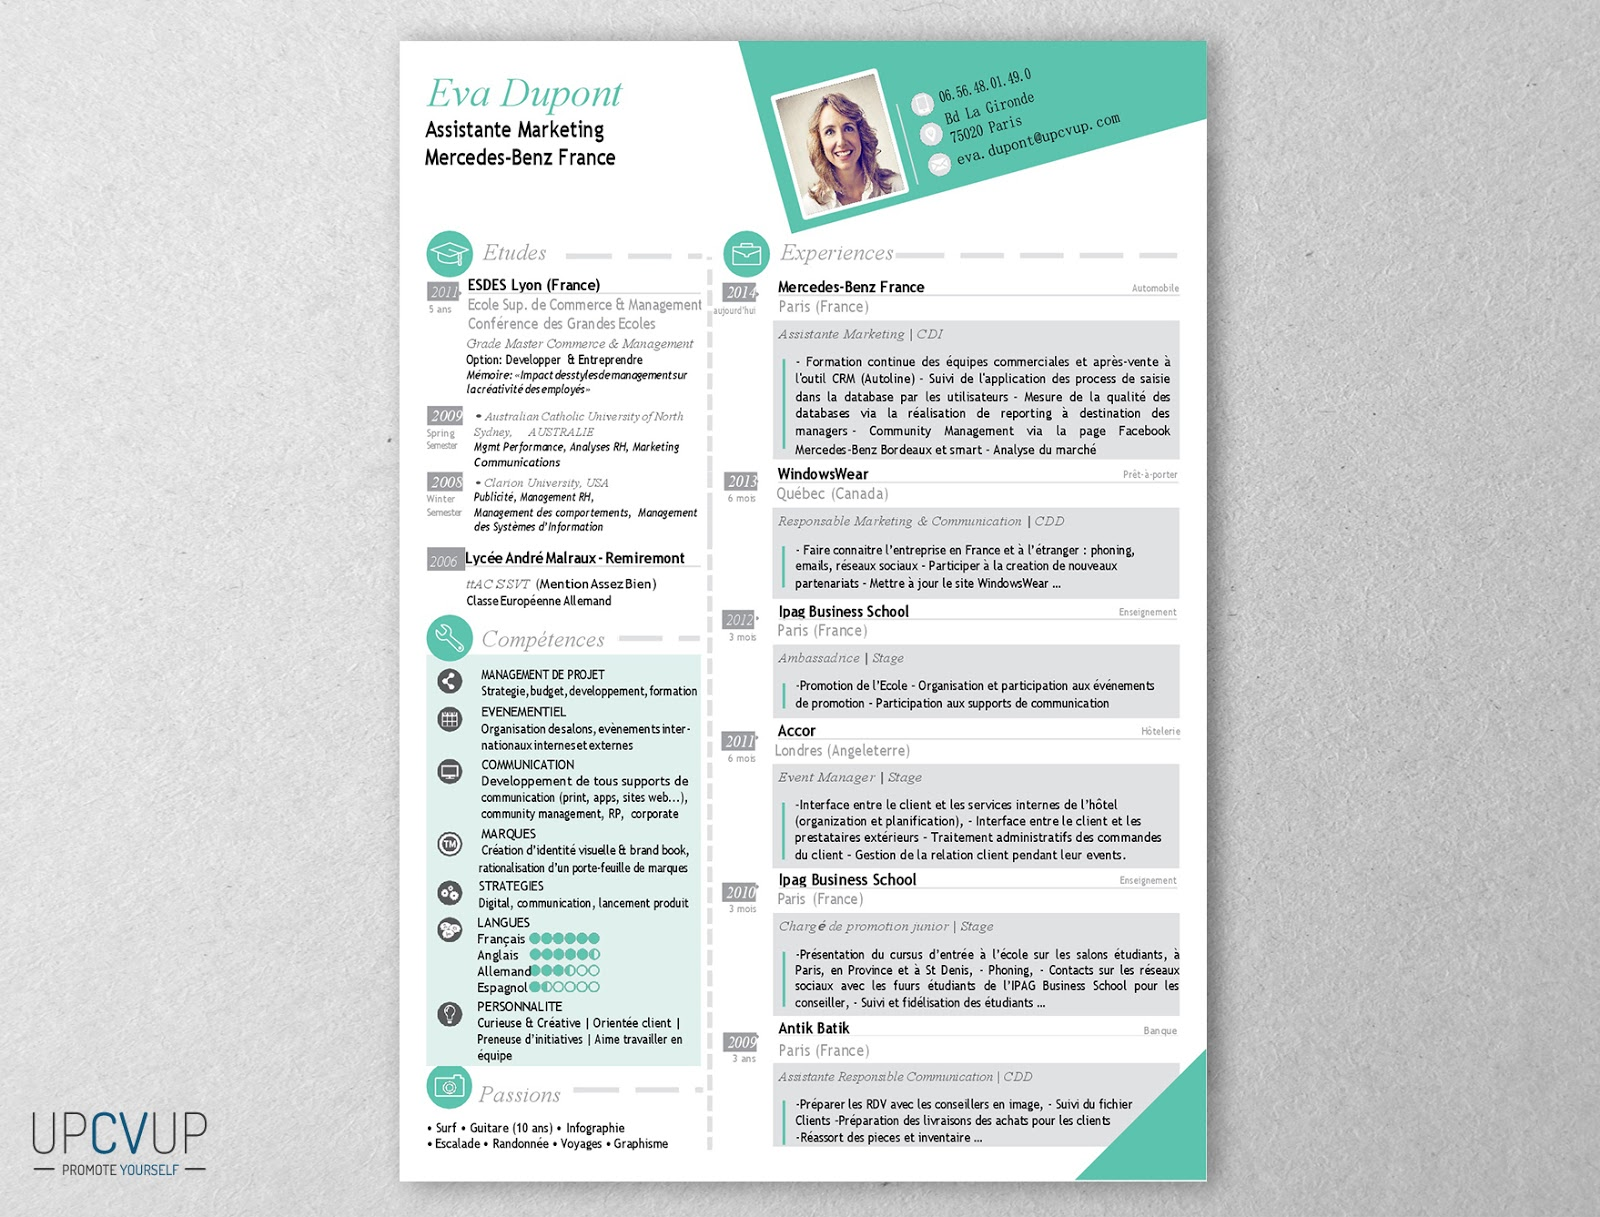 marketing assistant resume example, assistant marketing manager resume examples 2019, marketing assistant resume objective examples 2020, digital marketing assistant resume examples